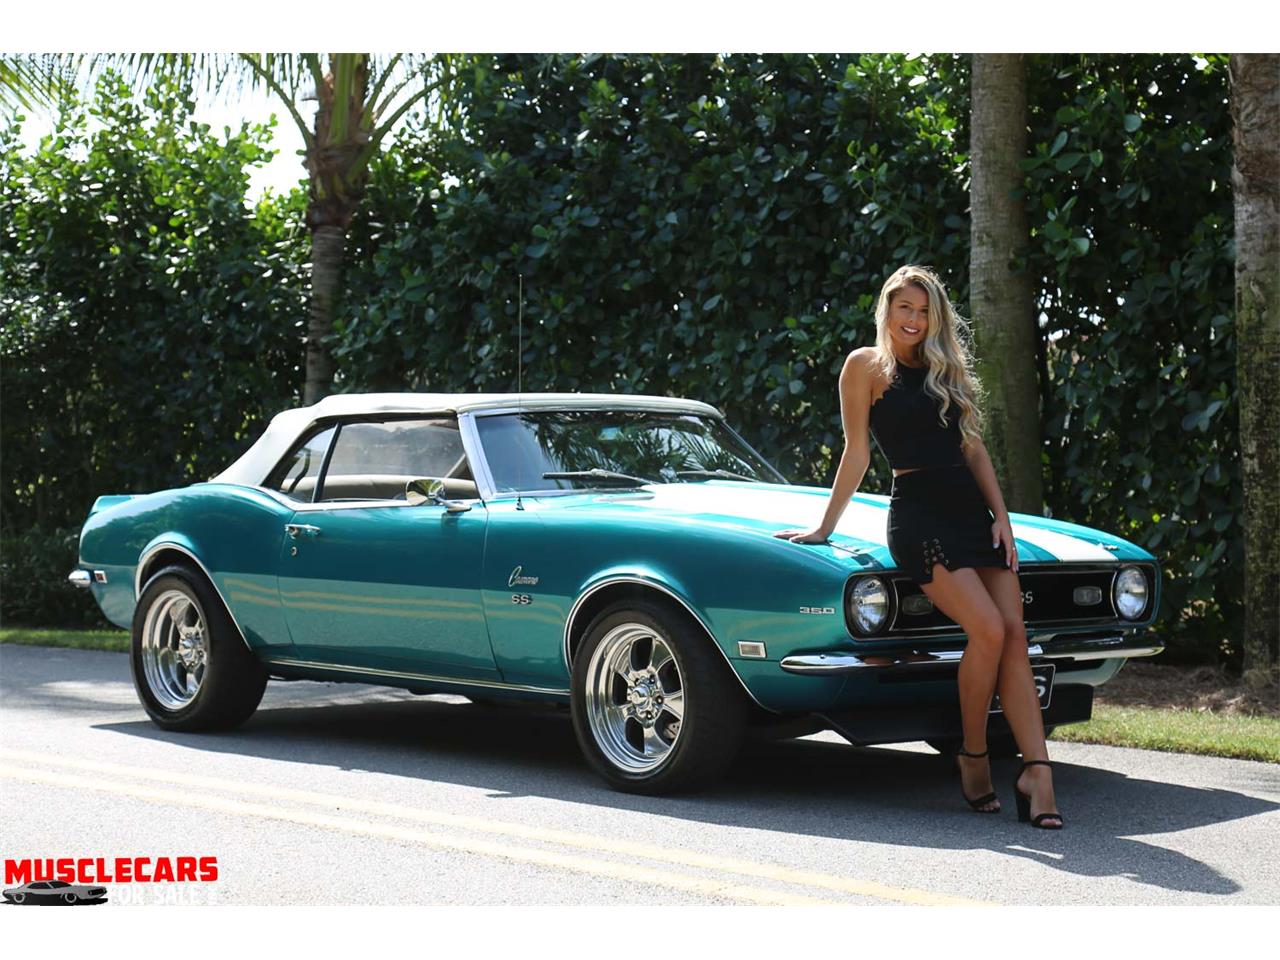 Large Picture of 1968 Chevrolet Camaro SS located in Florida - $37,500.00 - PNWZ